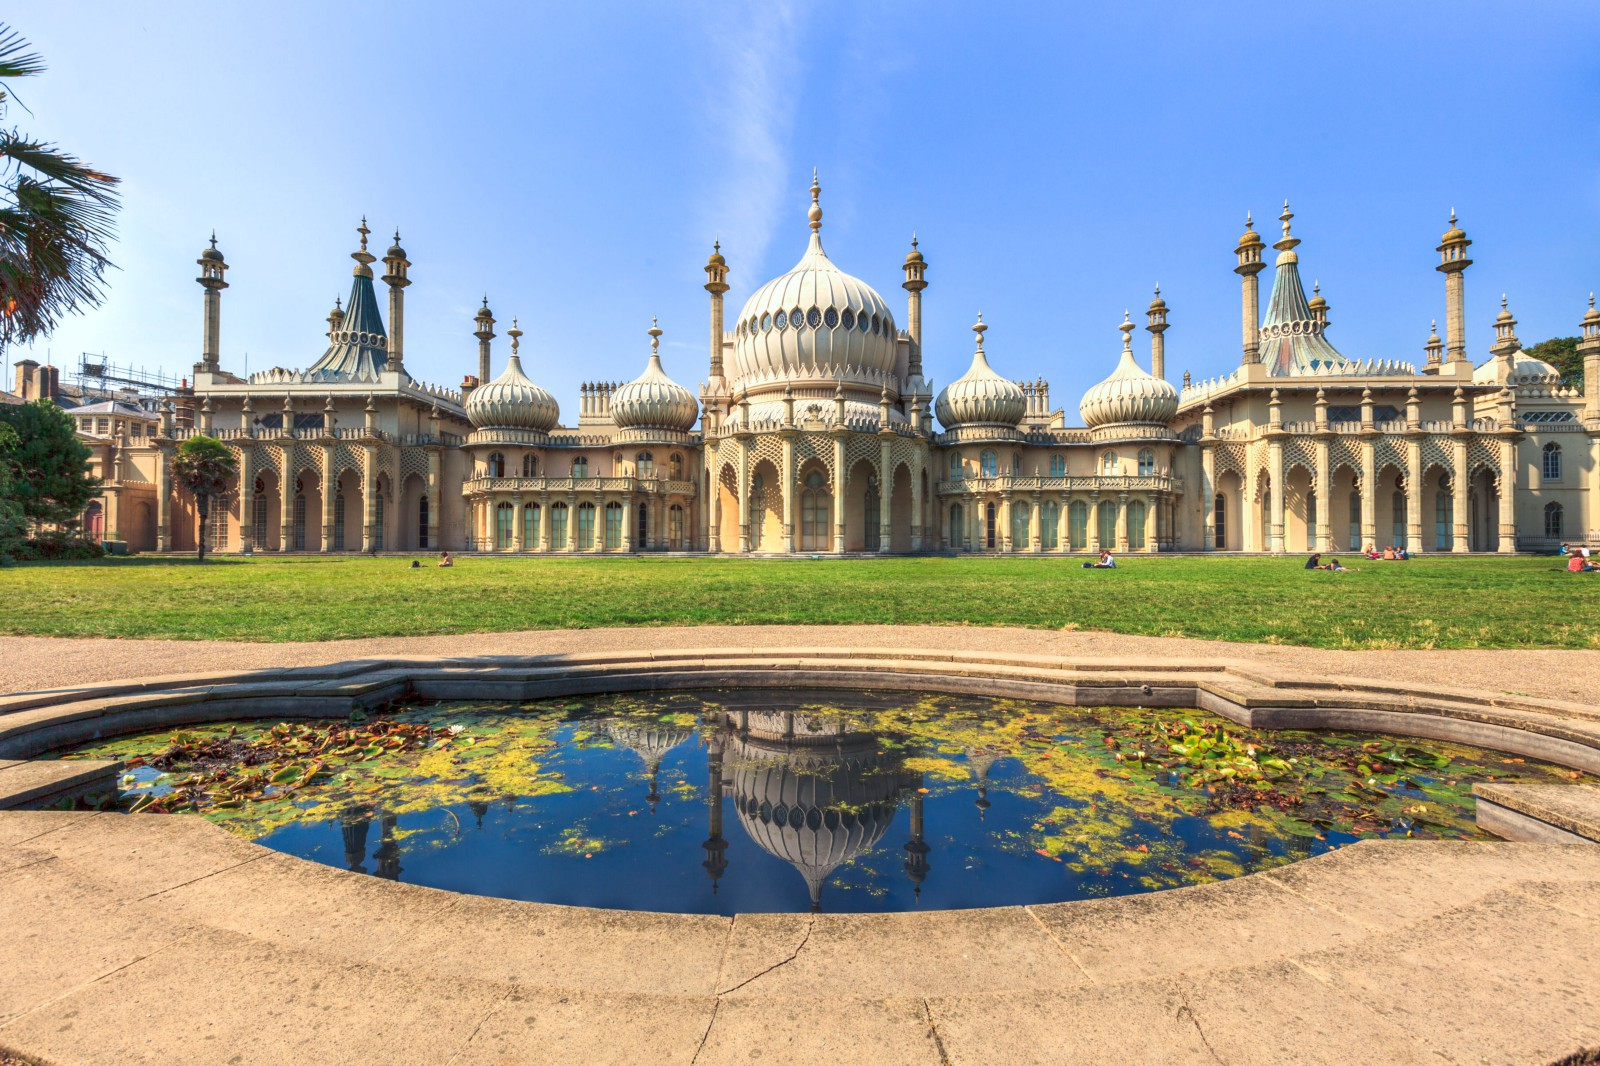 things to do in Brighton - Brighton pavilion